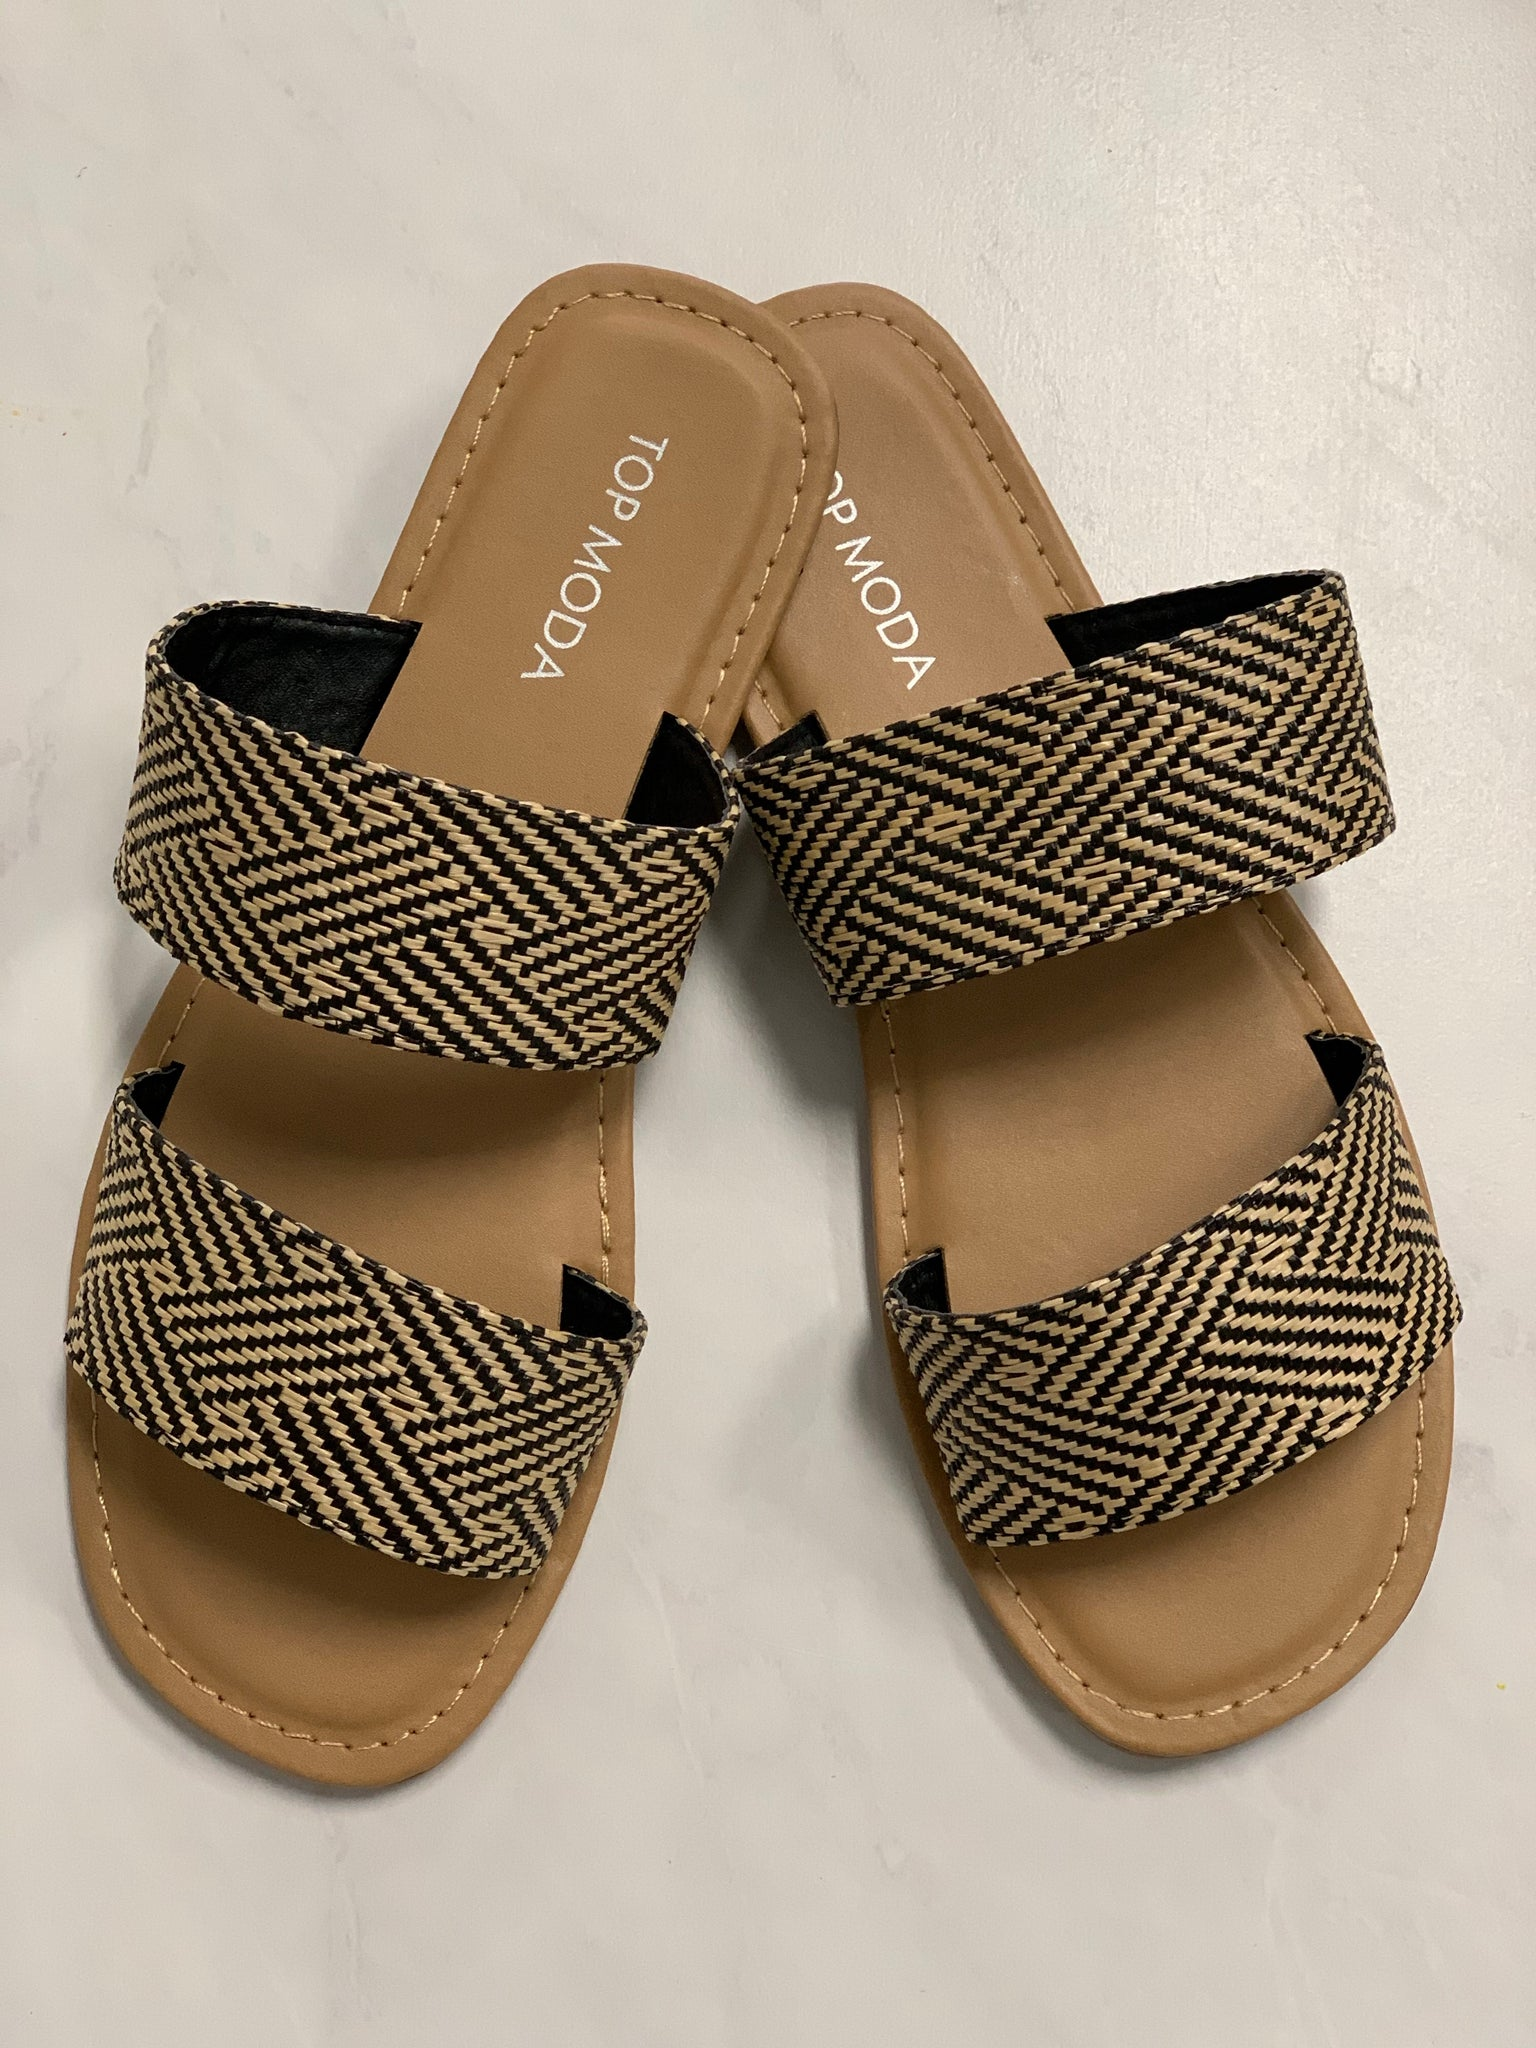 Salt & pepper slides